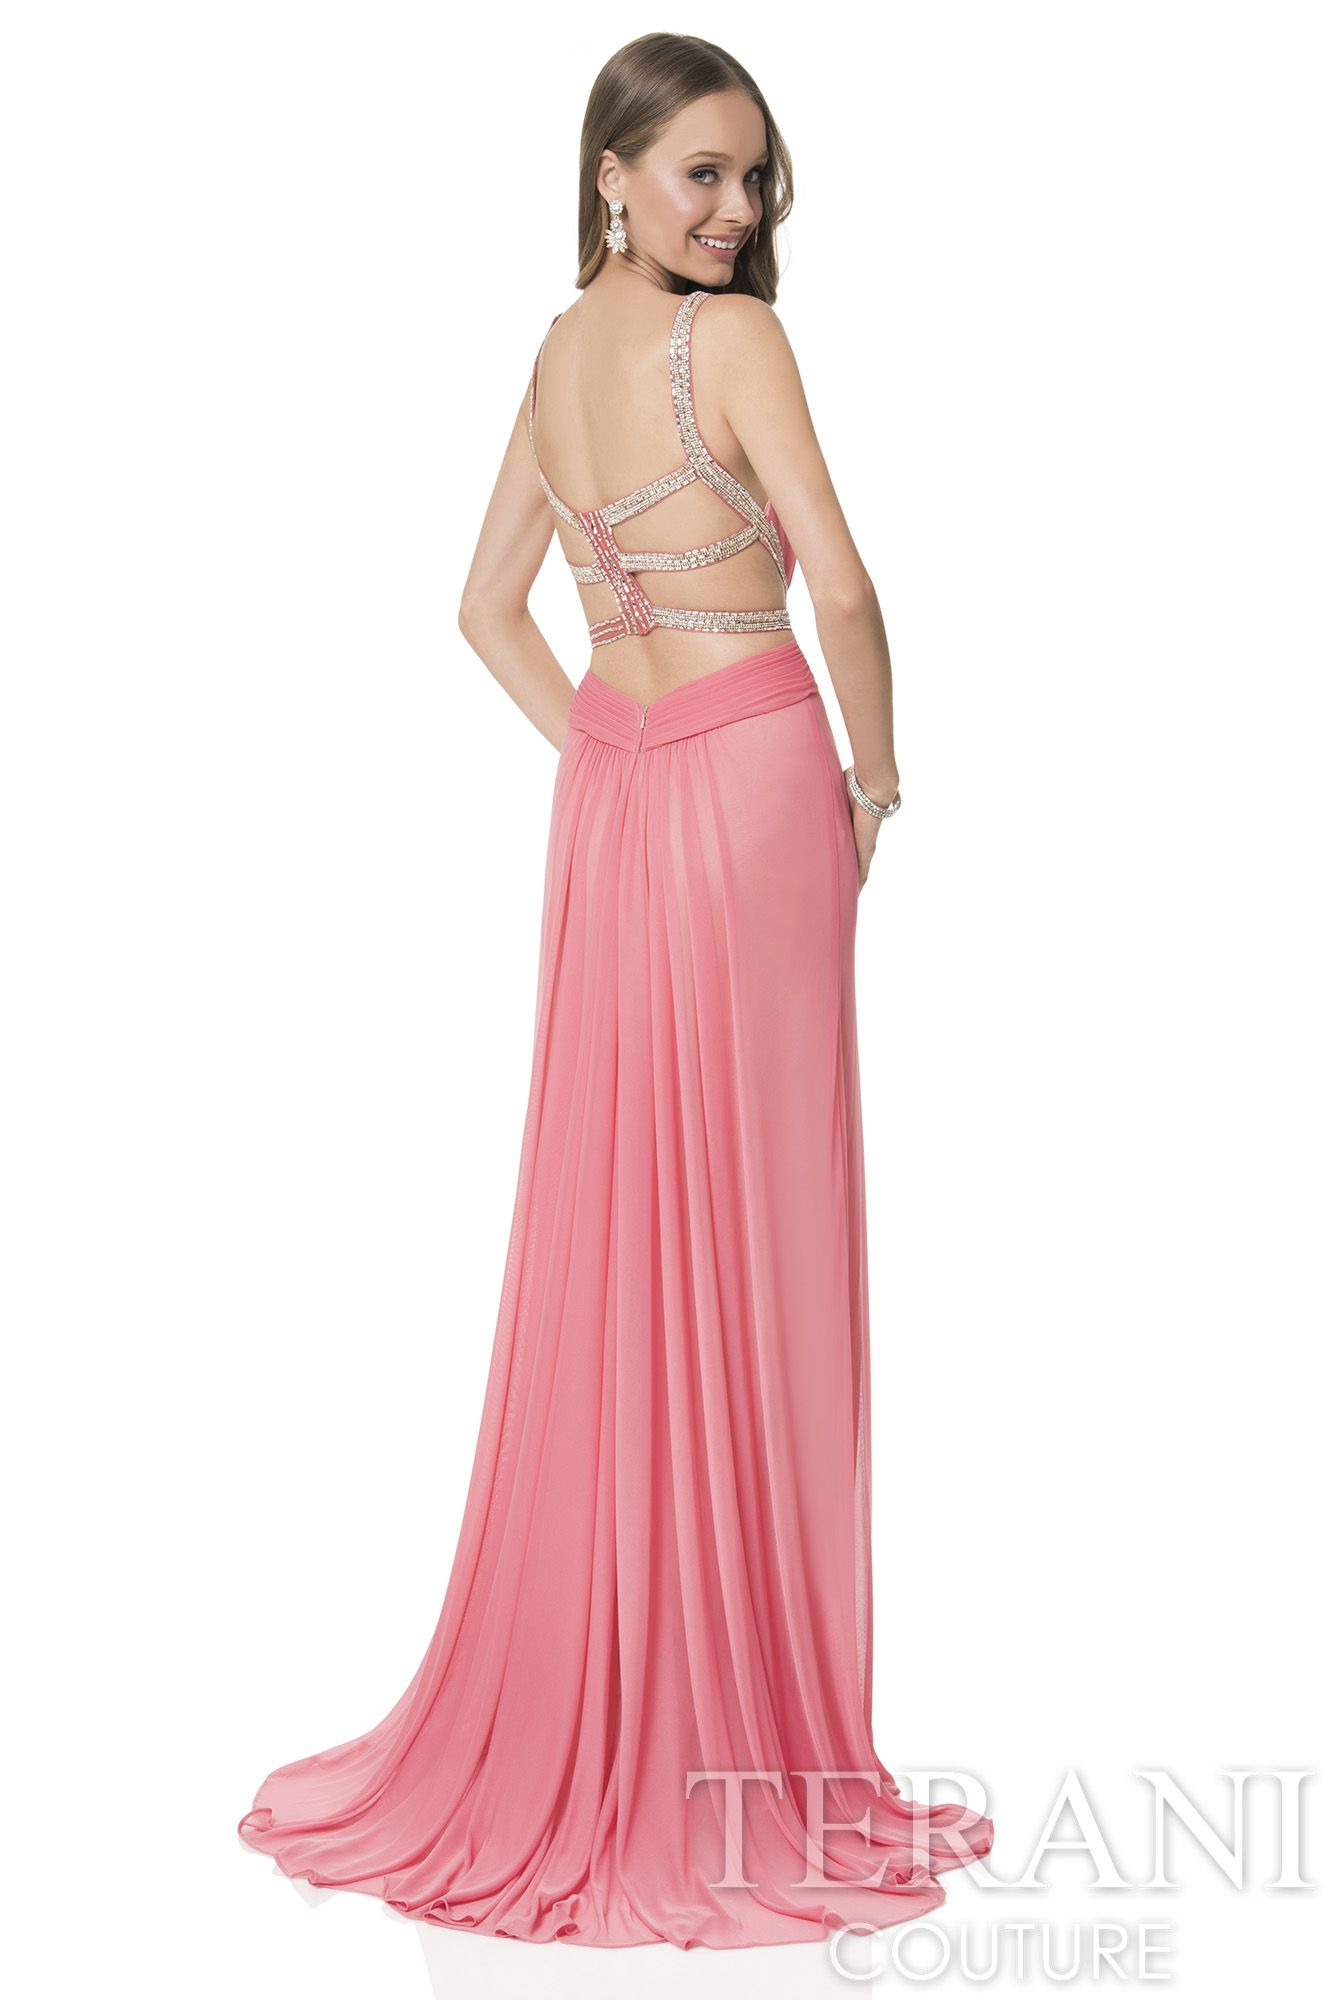 Grecian inspired mesh wrap prom gown. This prom dress features ...